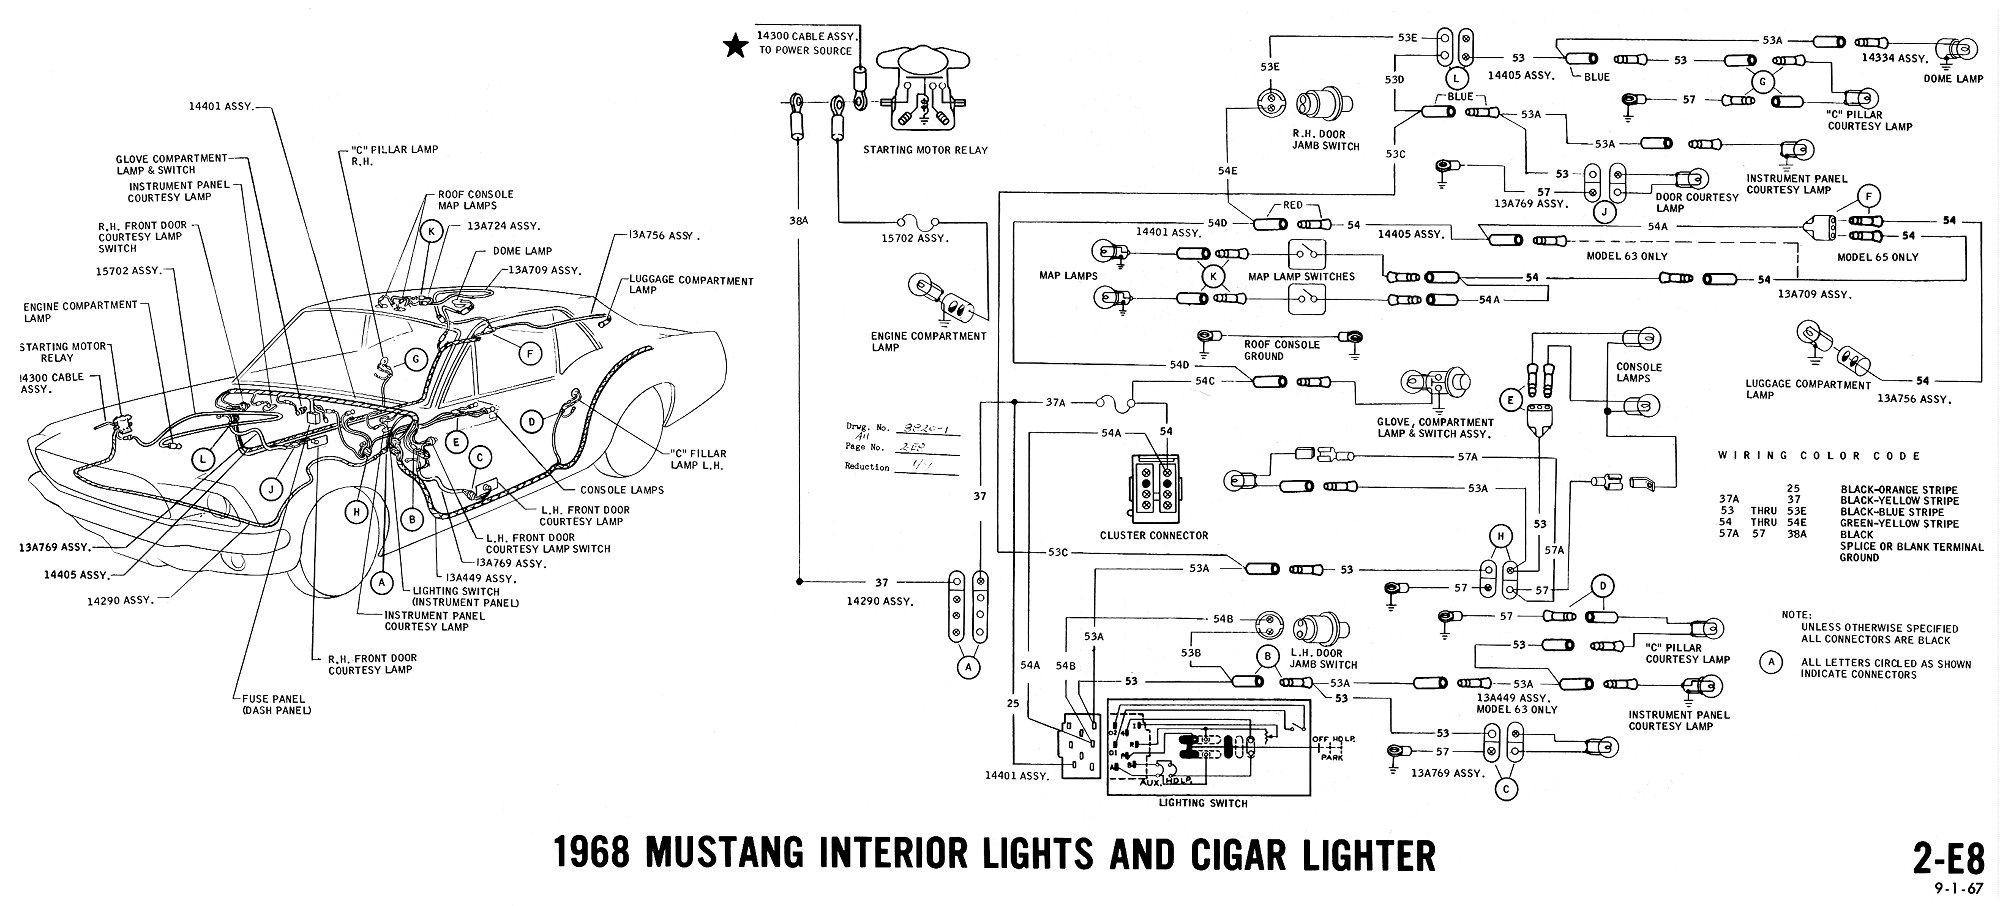 E8 1968 mustang wiring diagrams evolving software 1970 mustang wiring diagram pdf at bakdesigns.co